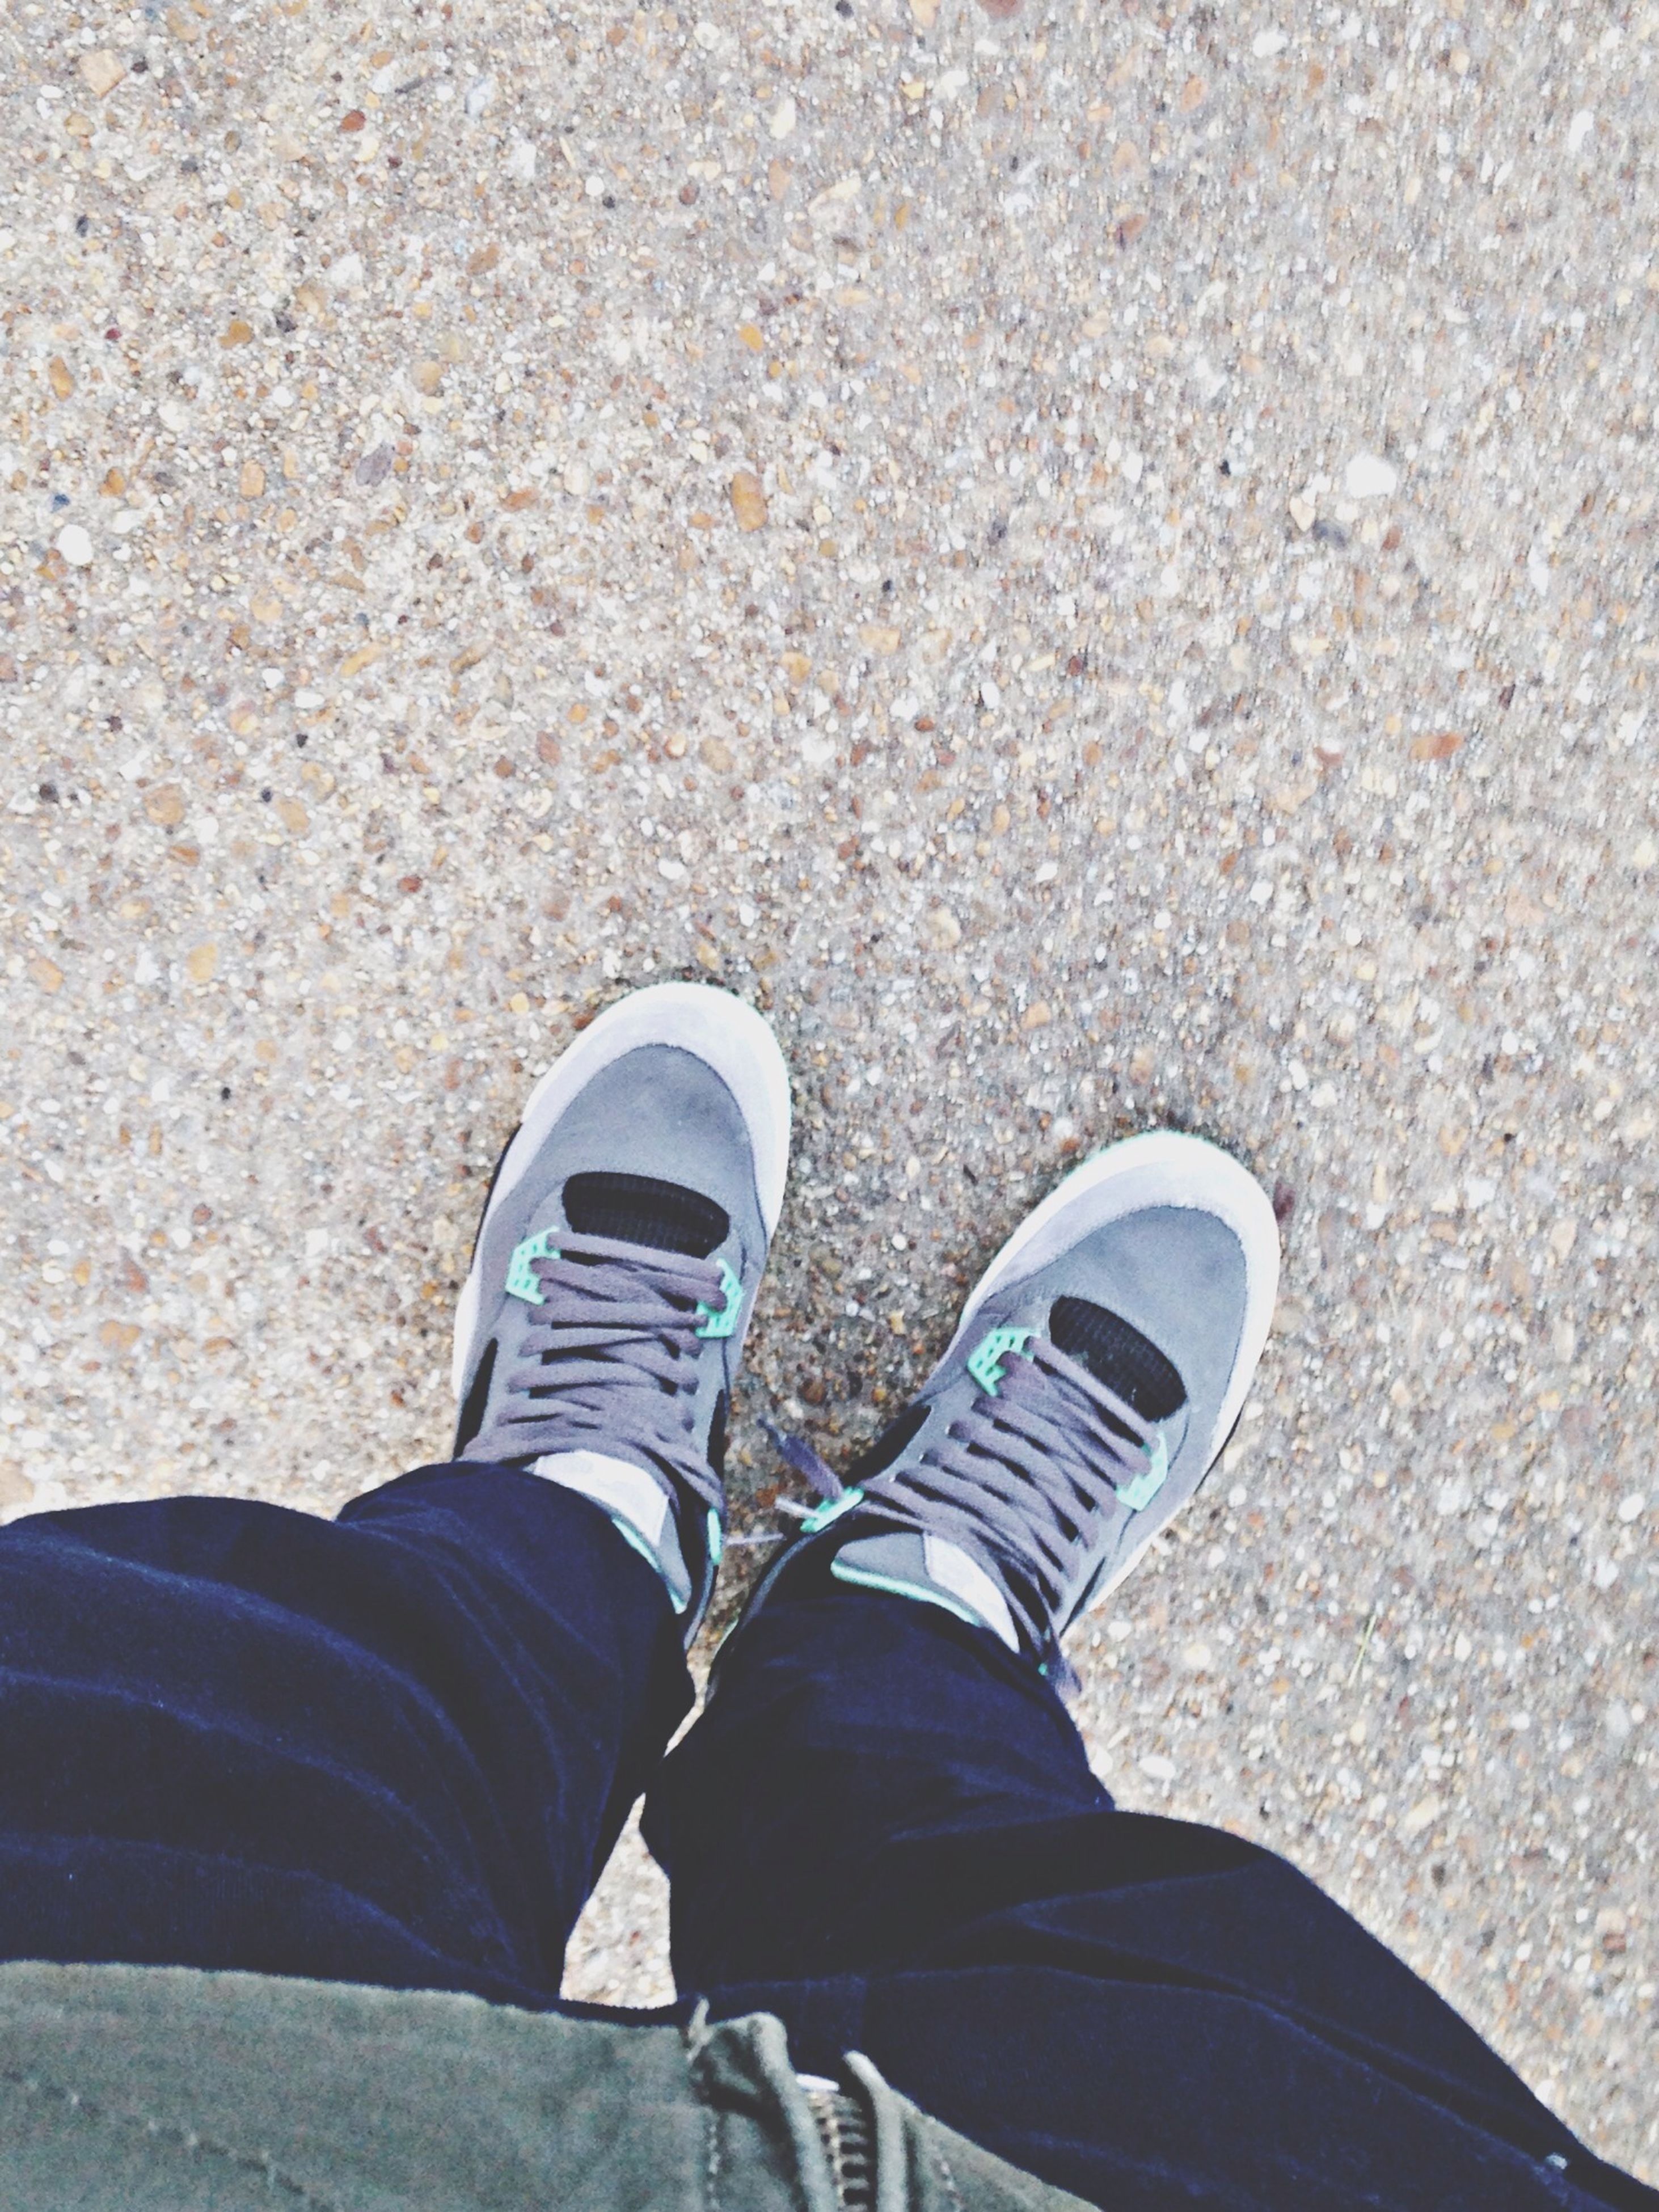 low section, person, shoe, personal perspective, standing, footwear, lifestyles, jeans, high angle view, human foot, leisure activity, men, casual clothing, directly above, canvas shoe, street, day